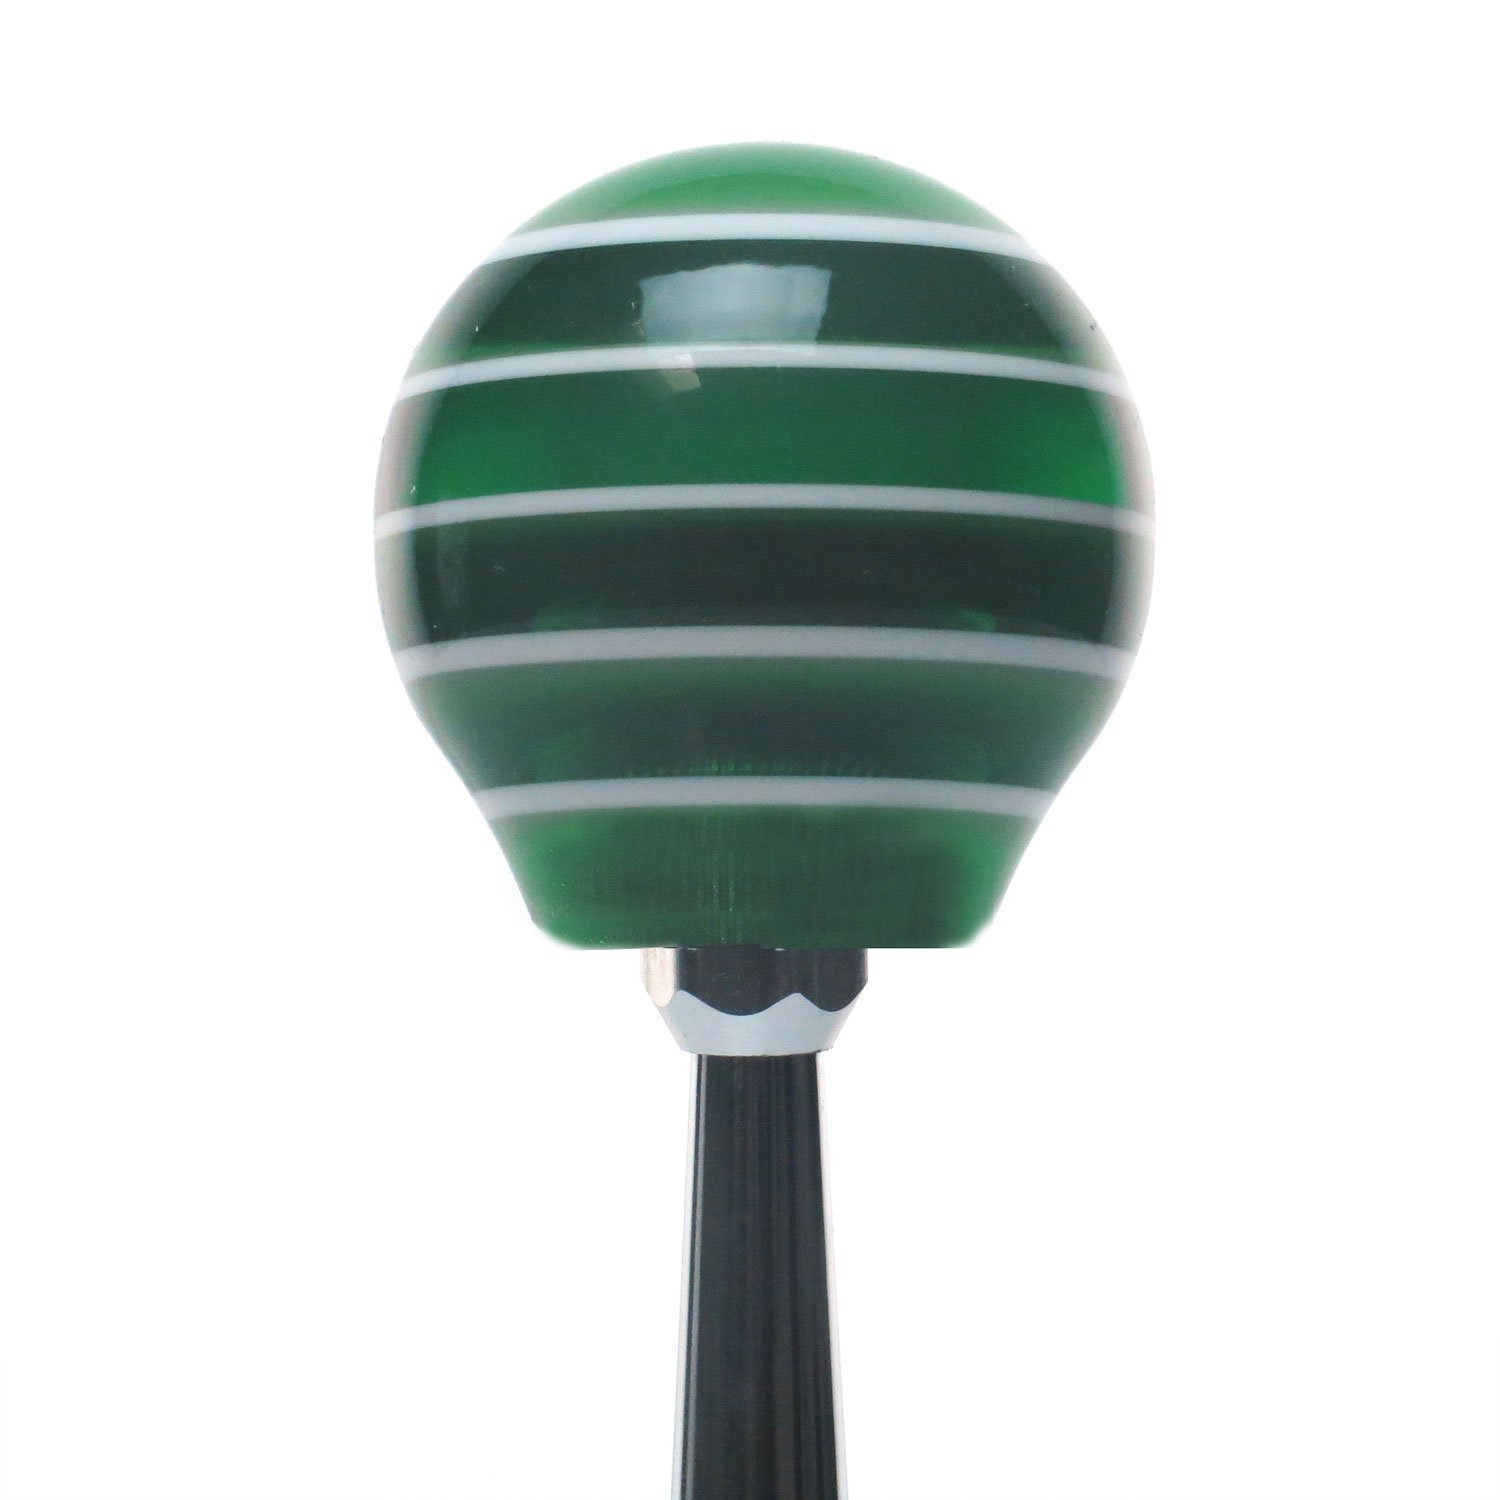 American Shifter 275661 Shift Knob Orange 4 Speed Shift Pattern - Gas 6 Green Stripe with M16 x 1.5 Insert